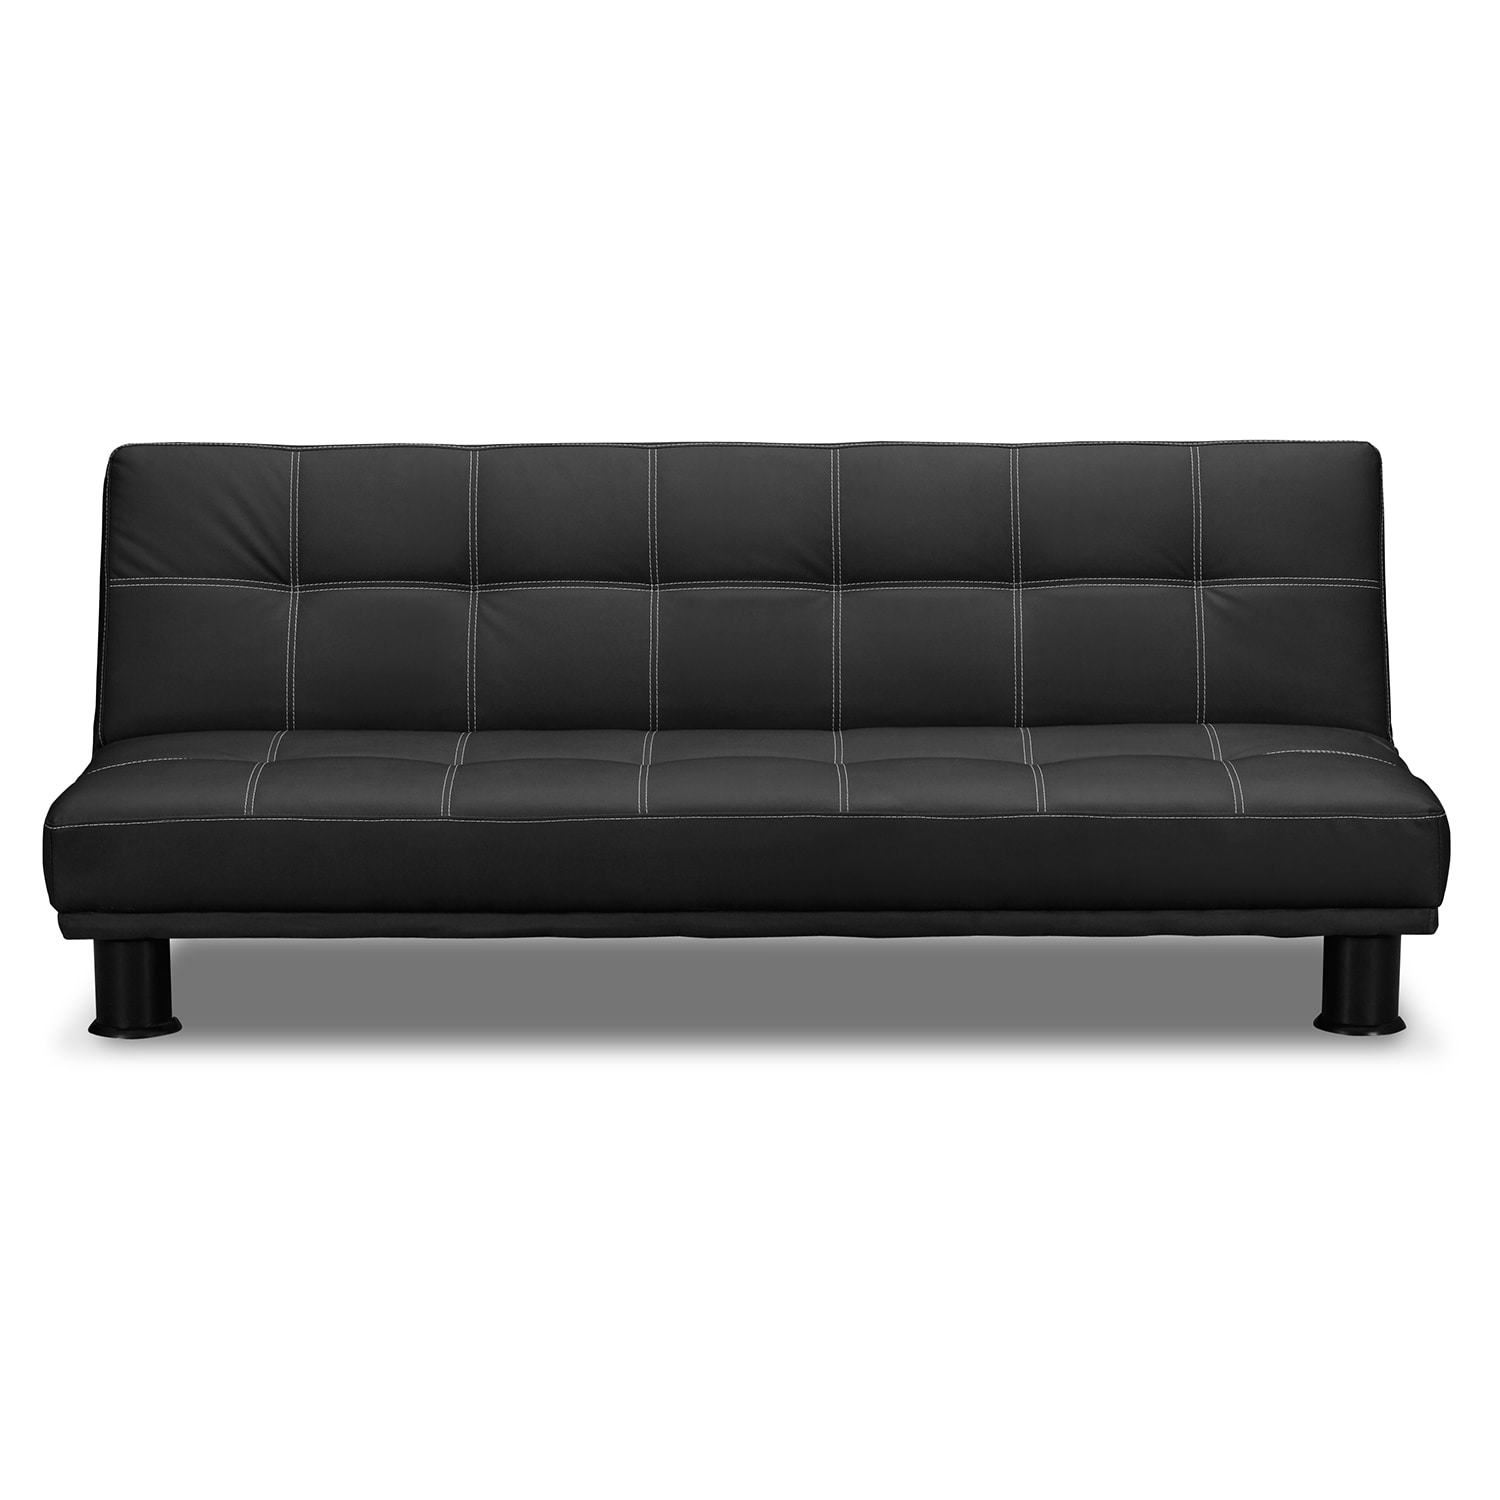 phyllo futon sofa bed - black | value city furniture and mattresses